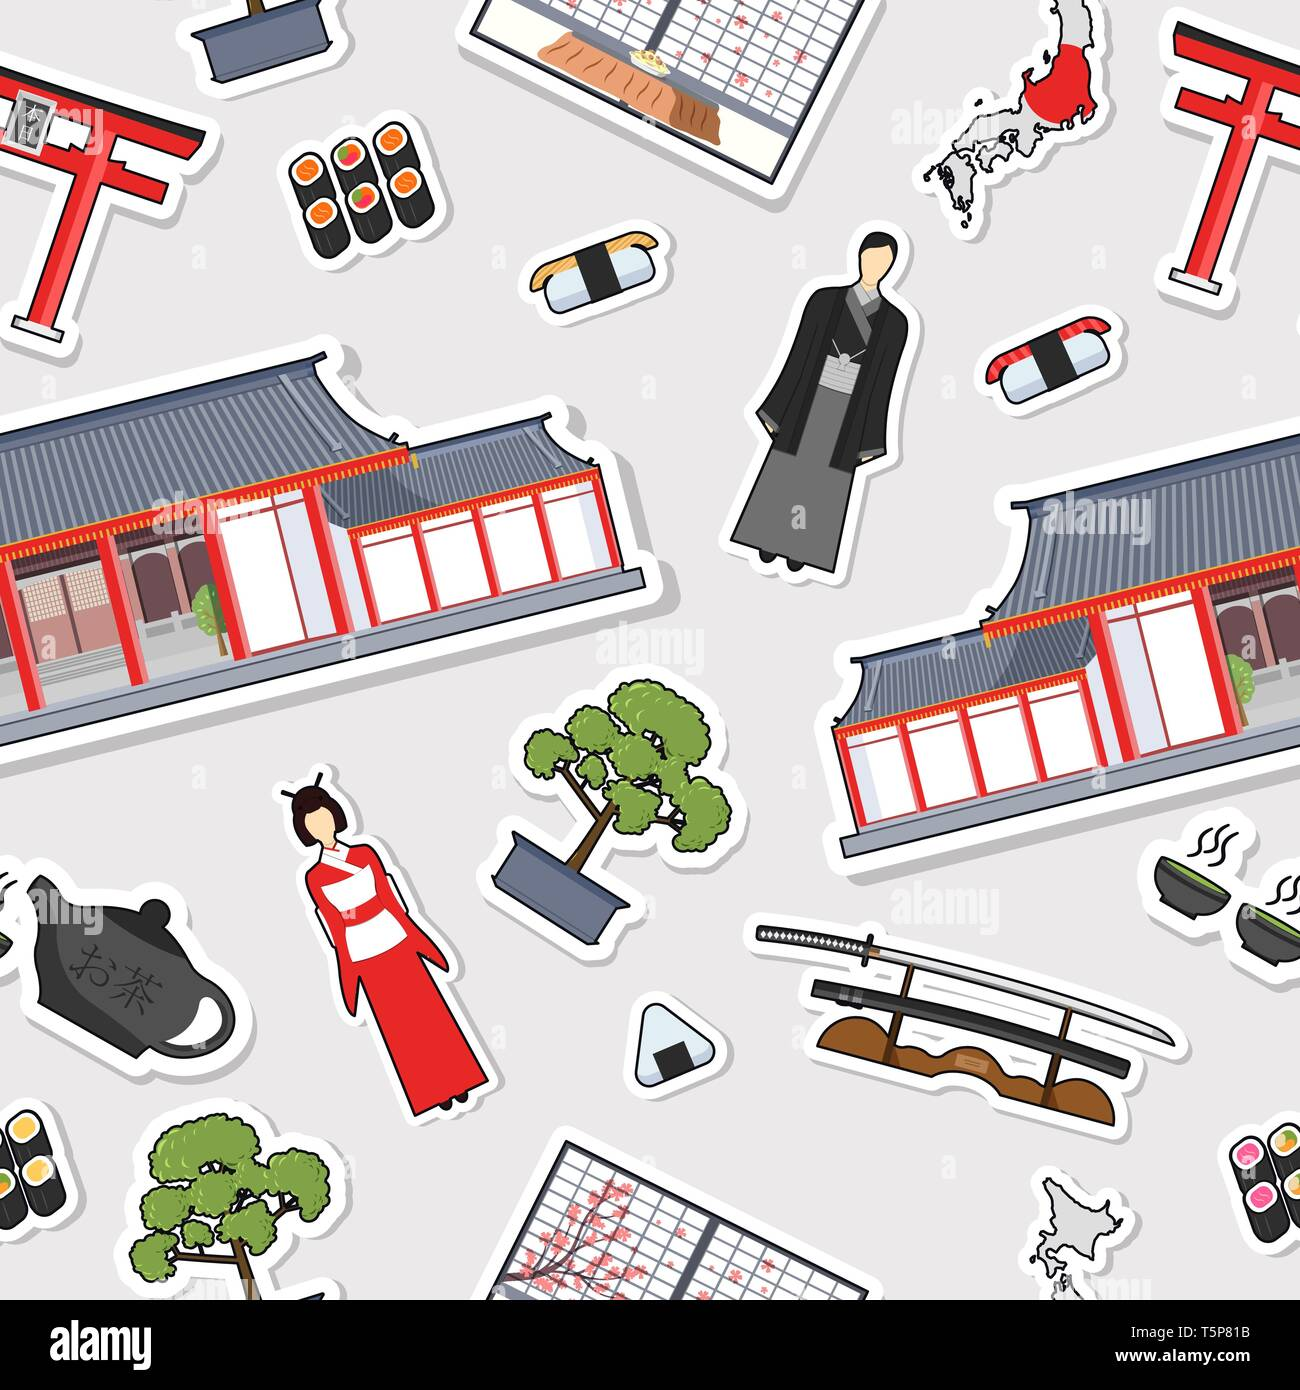 Country Japan travel vacation guide of goods, places and features. Set of architecture, fashion, people, items, nature background concept. Seamless pattern template design  on sticker flat style - Stock Vector